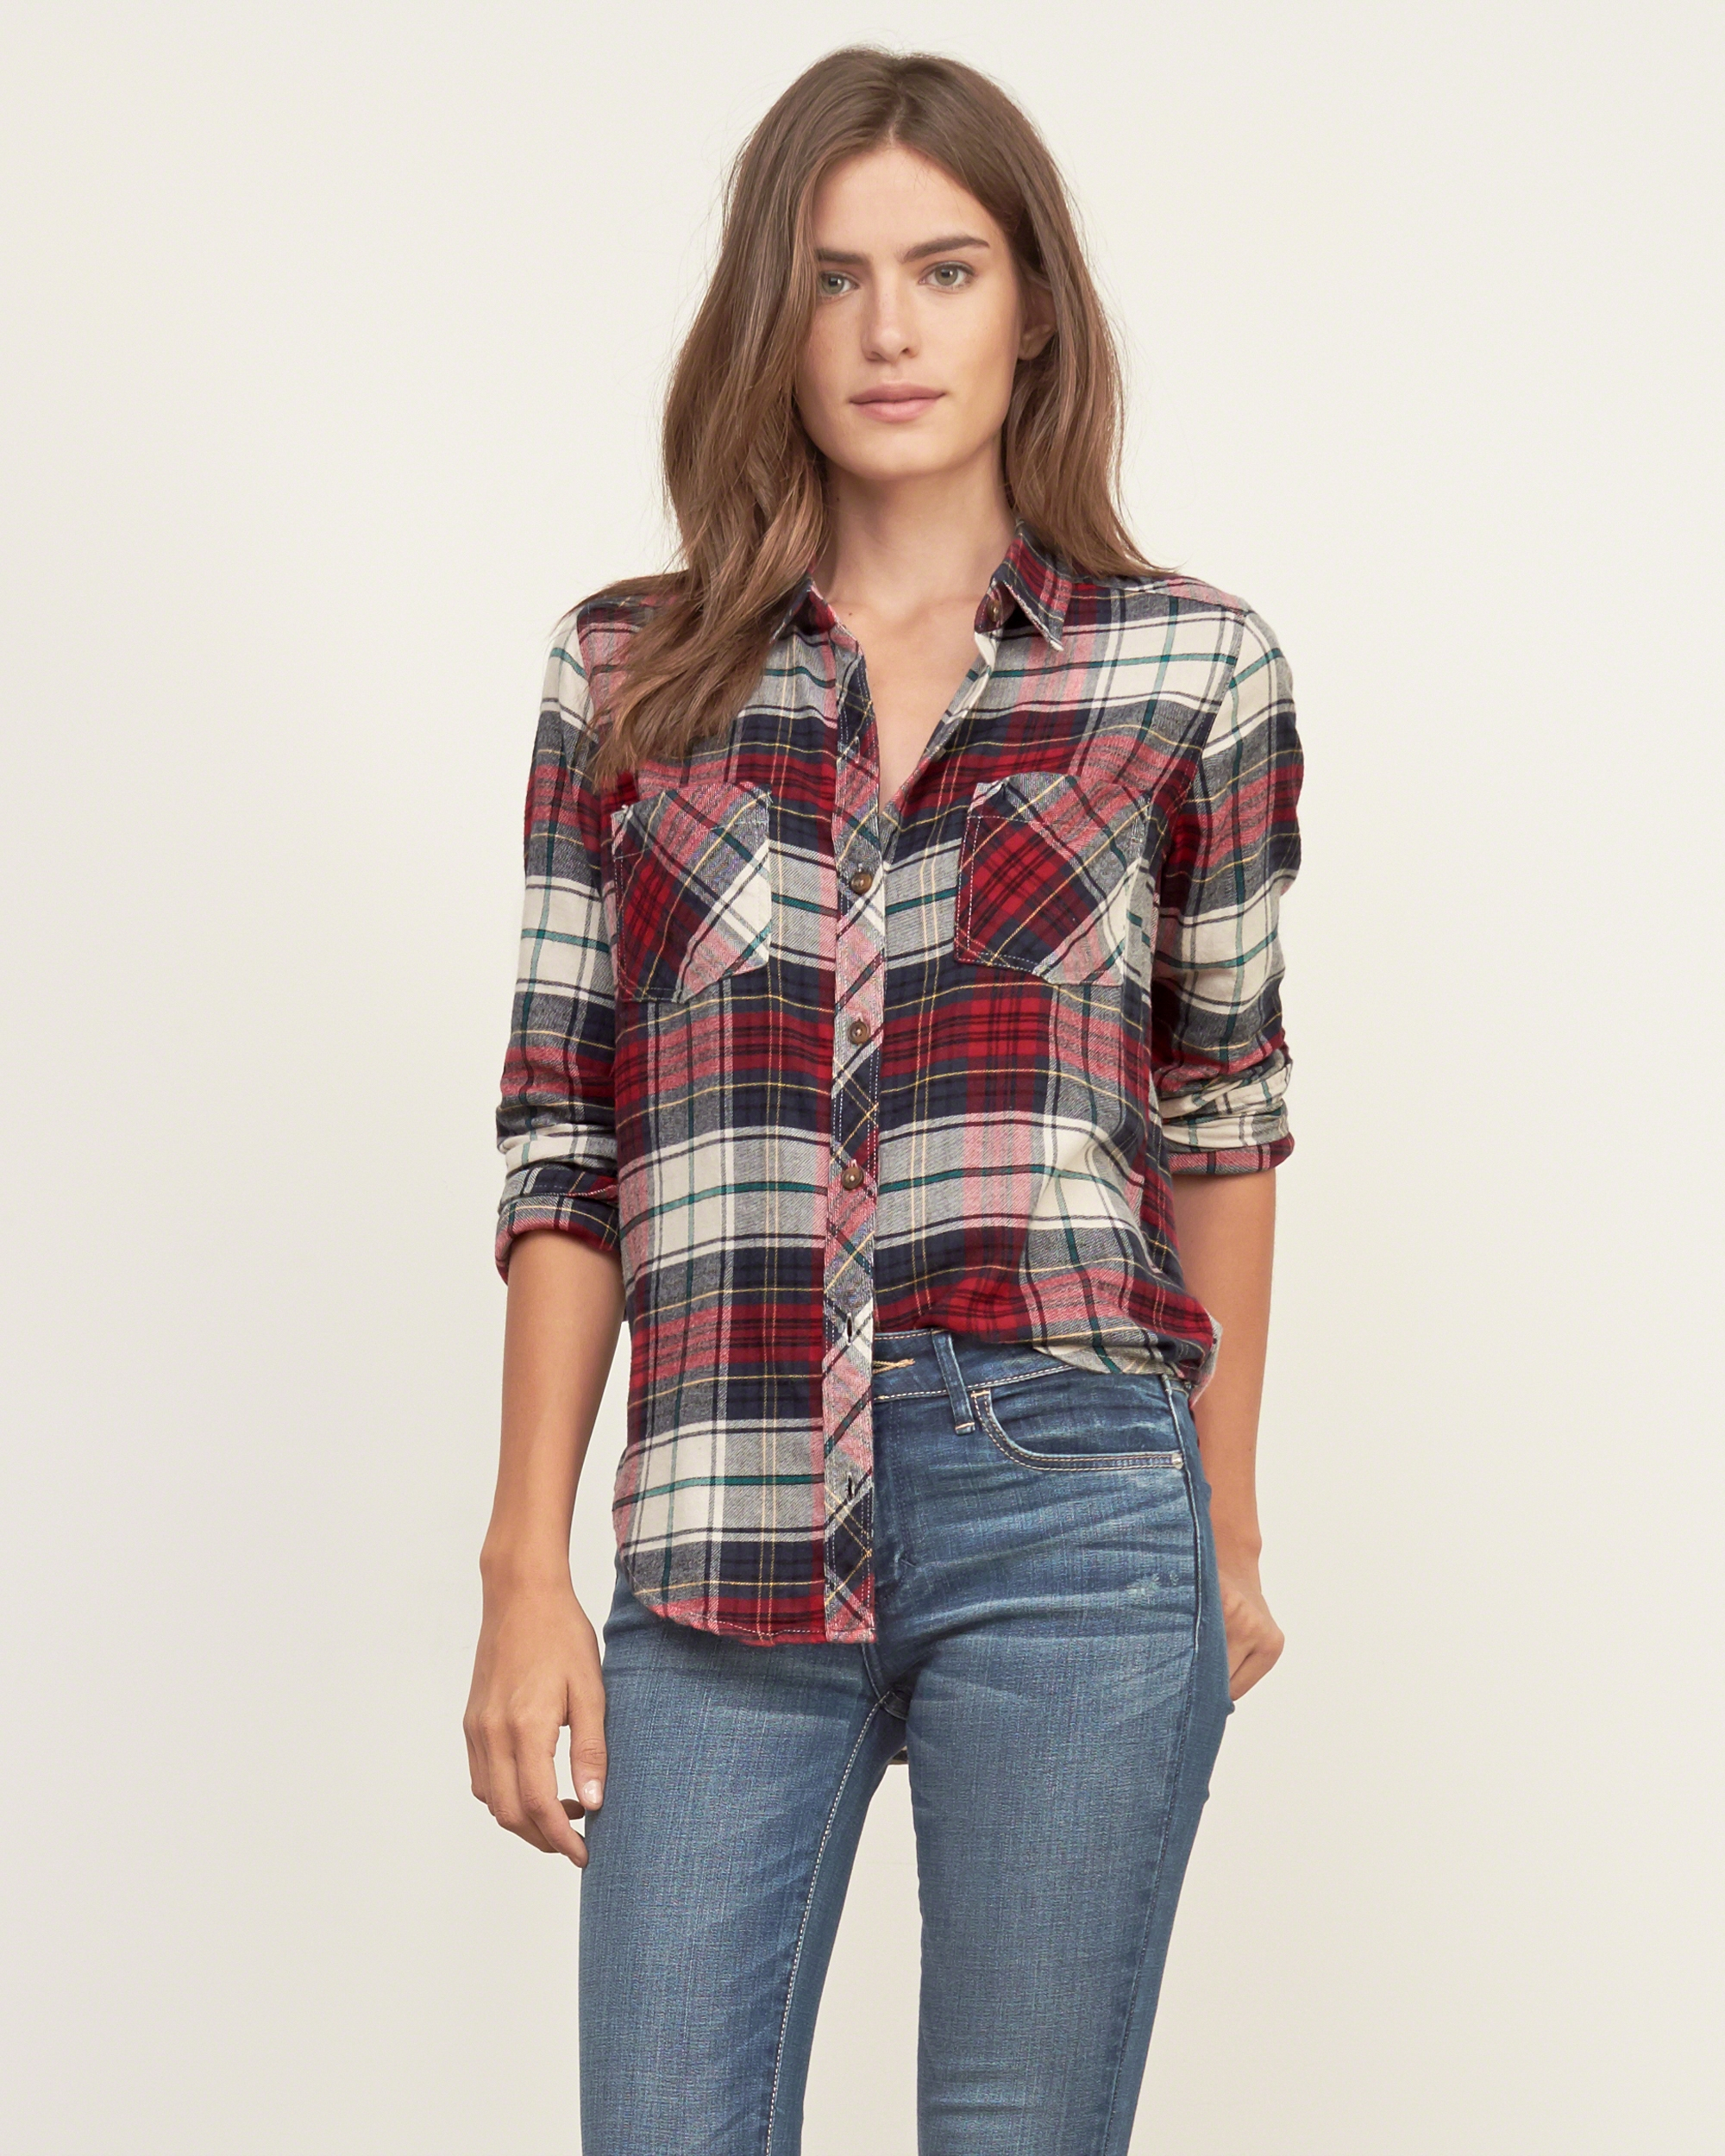 Lyst abercrombie fitch plaid flannel shirt in red for White and black flannel shirt womens